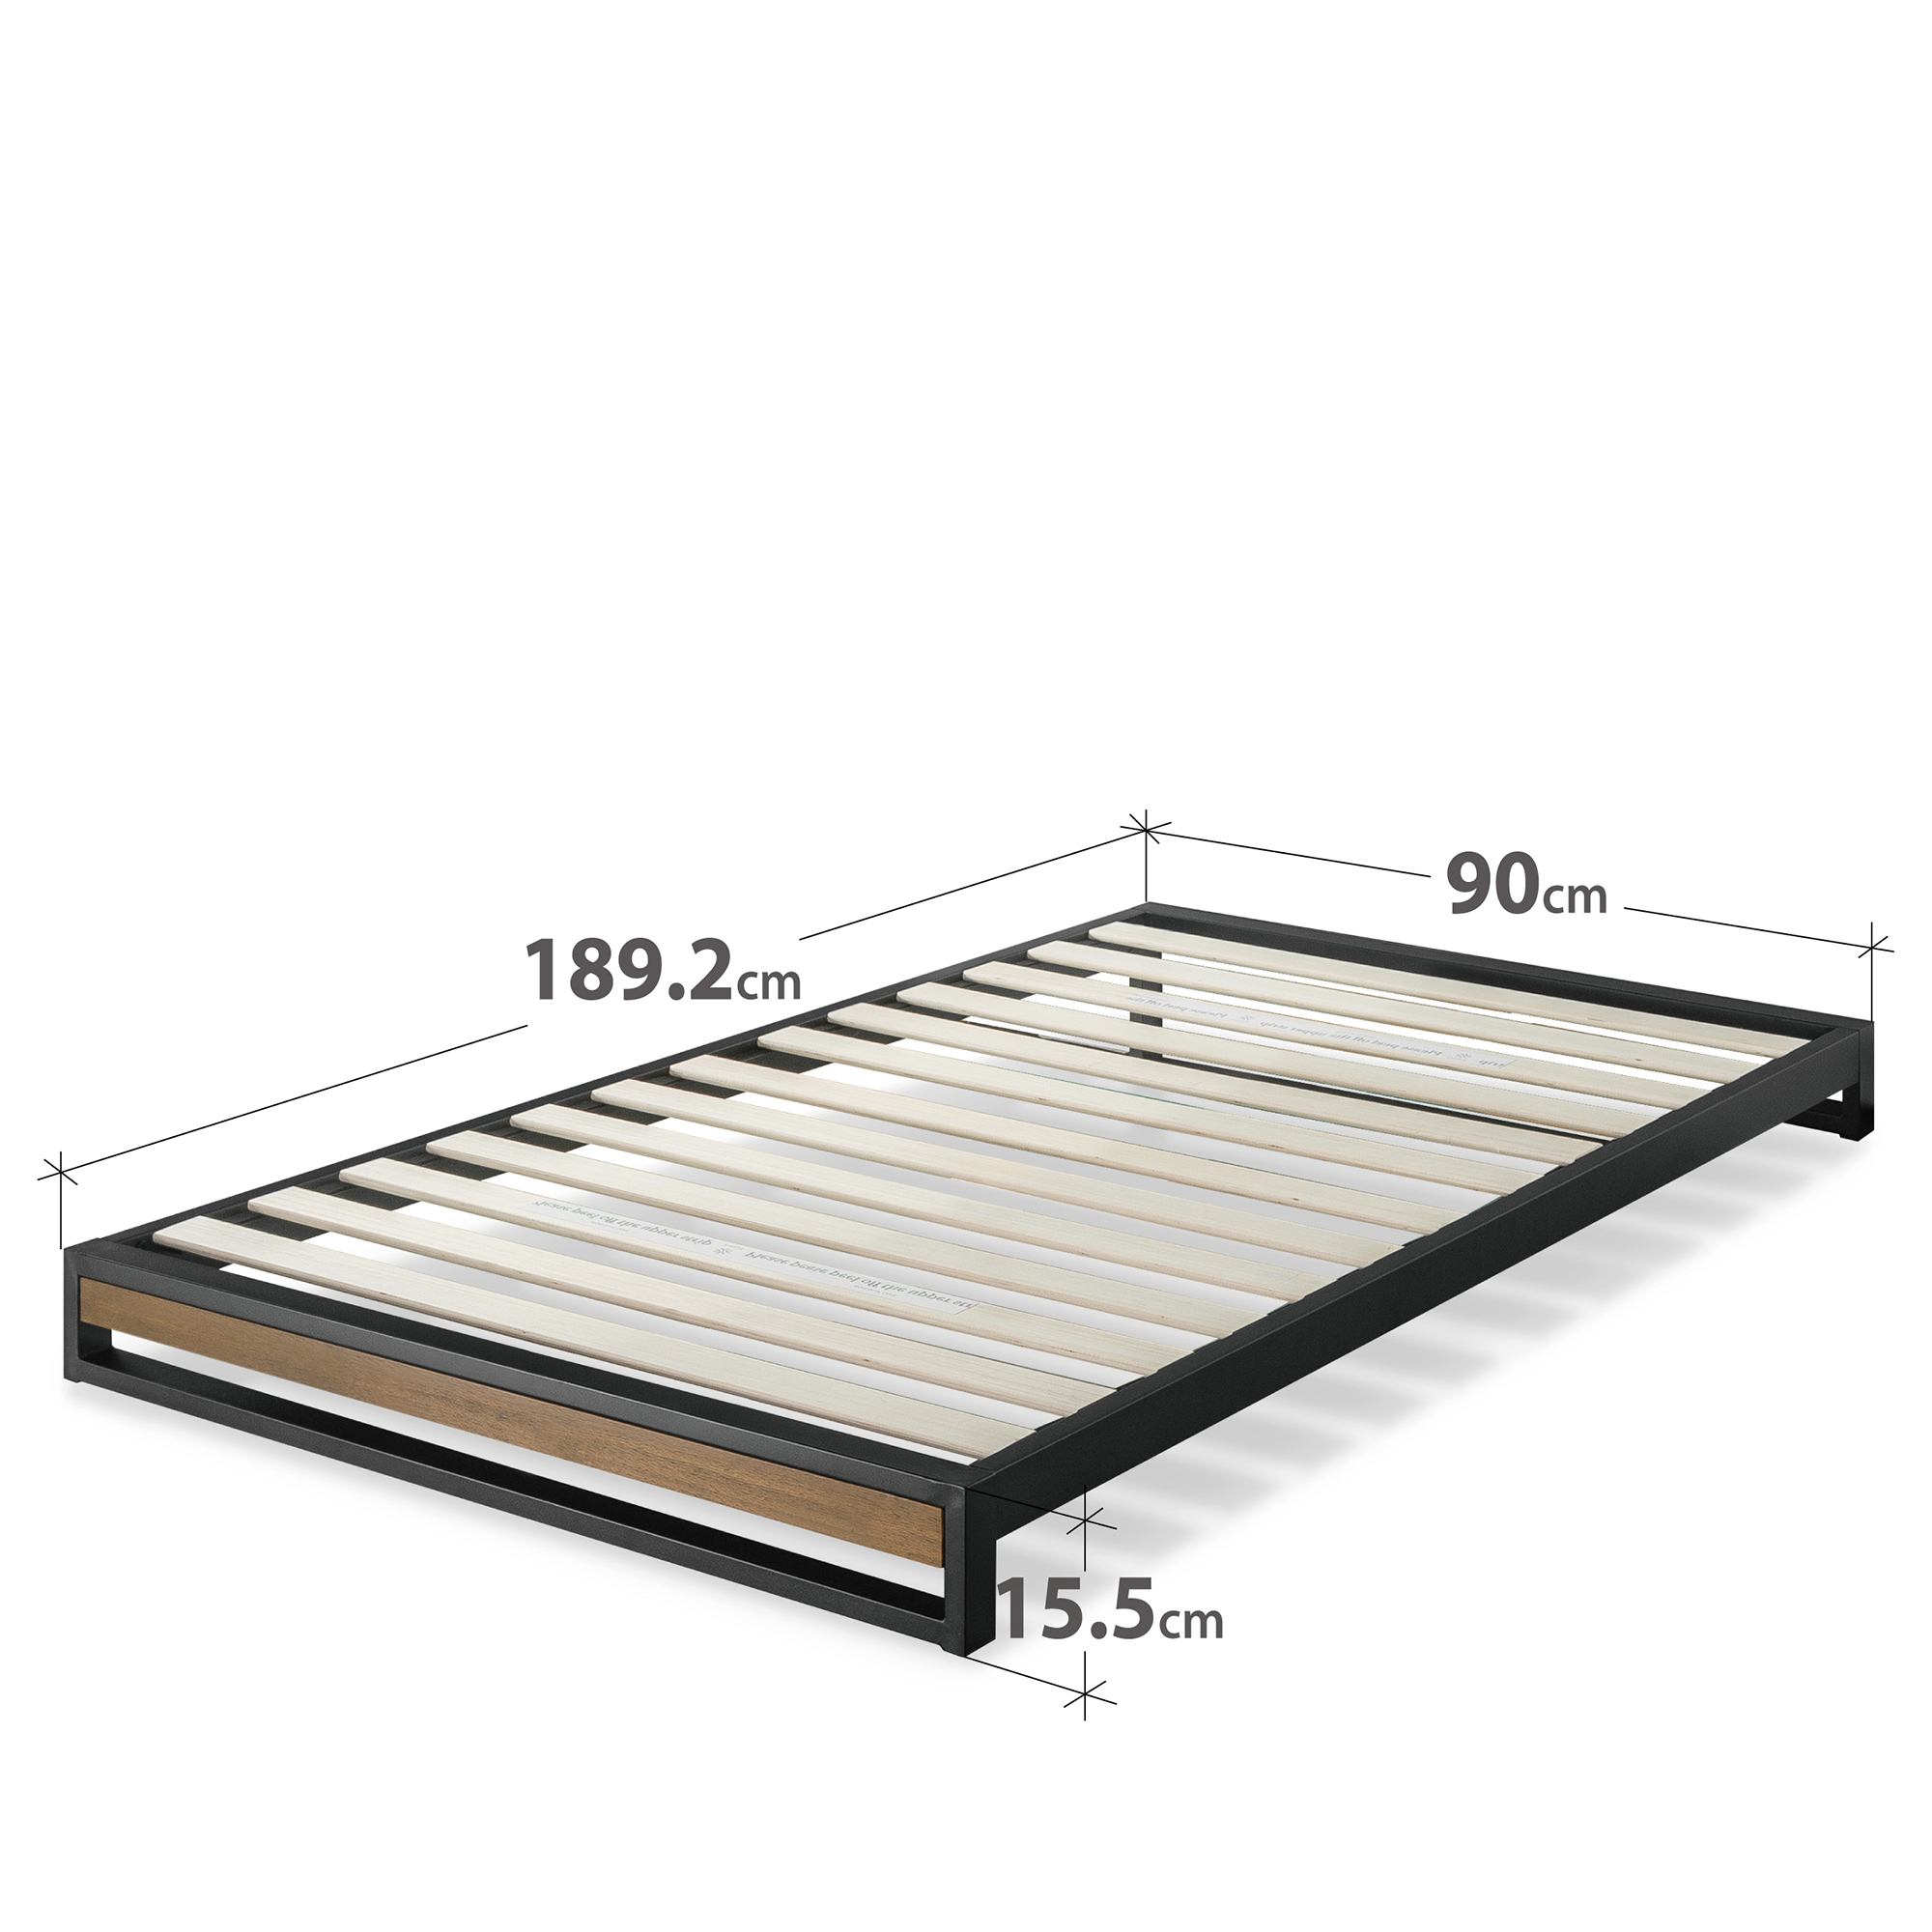 Zinus-Industrial-Metal-Wood-Bed-Frame-Single-Double-Queen-King-Low-Base-Mattress thumbnail 33